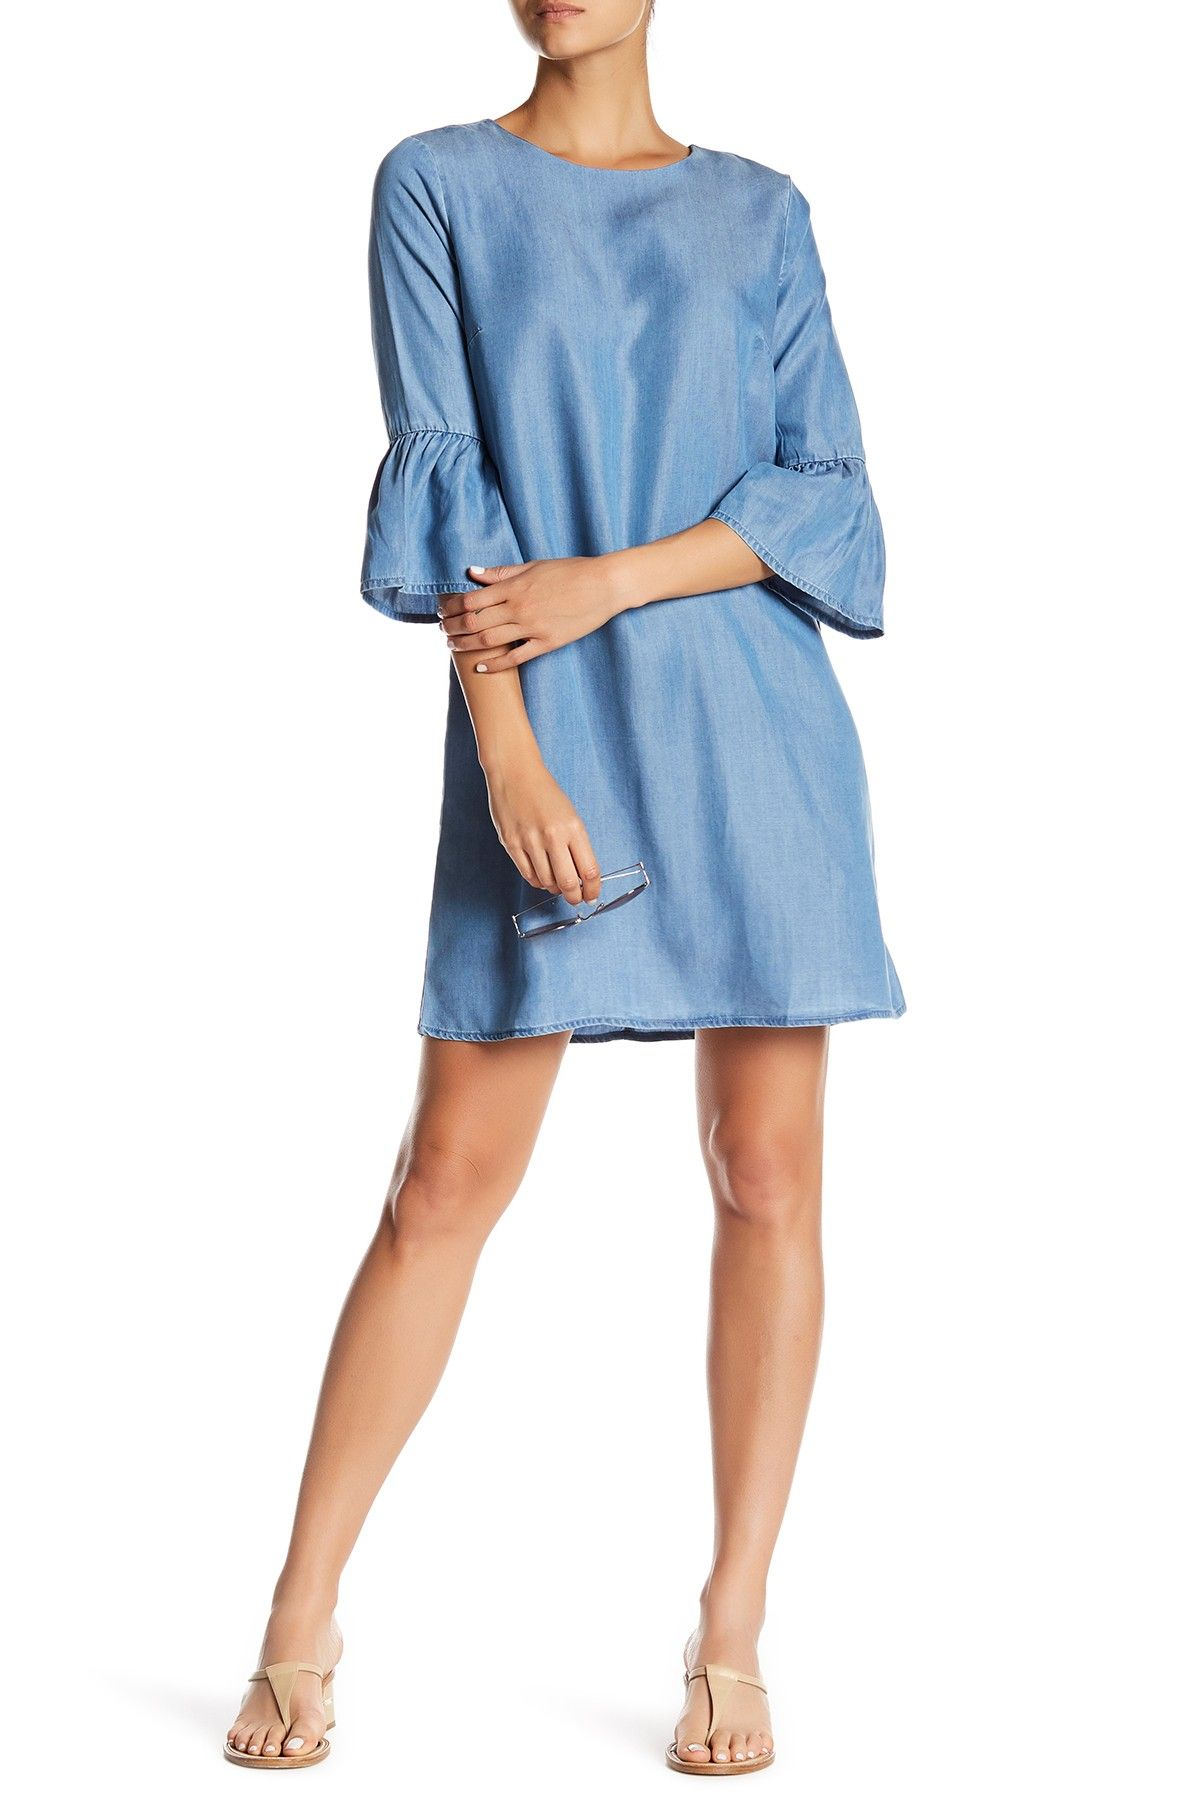 08c78c9f5 Super cute chambray dress from Nordstrom Rack (in stock as of 10 13)